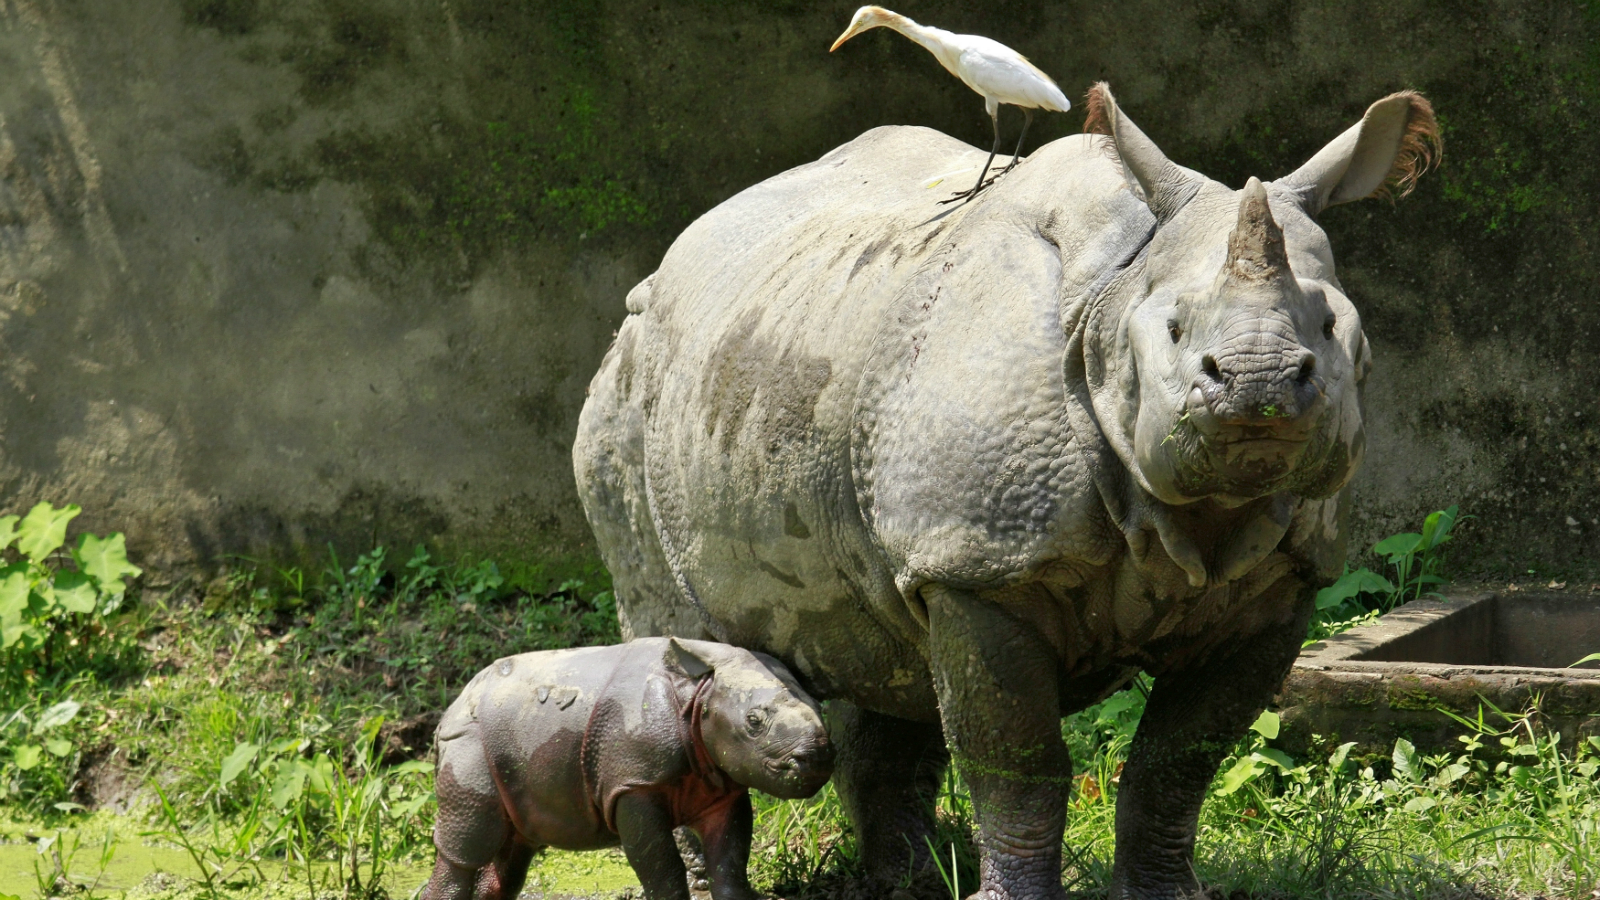 A one-horned rhino named Baghekhaity stands next to its 10-day-old calf at a zoo in Guwahati, in the northeastern Indian state of Assam, September 10, 2013. The calf was born on September 1 under the conservation breeding programme for one-horned rhinos in the state, local media reported.